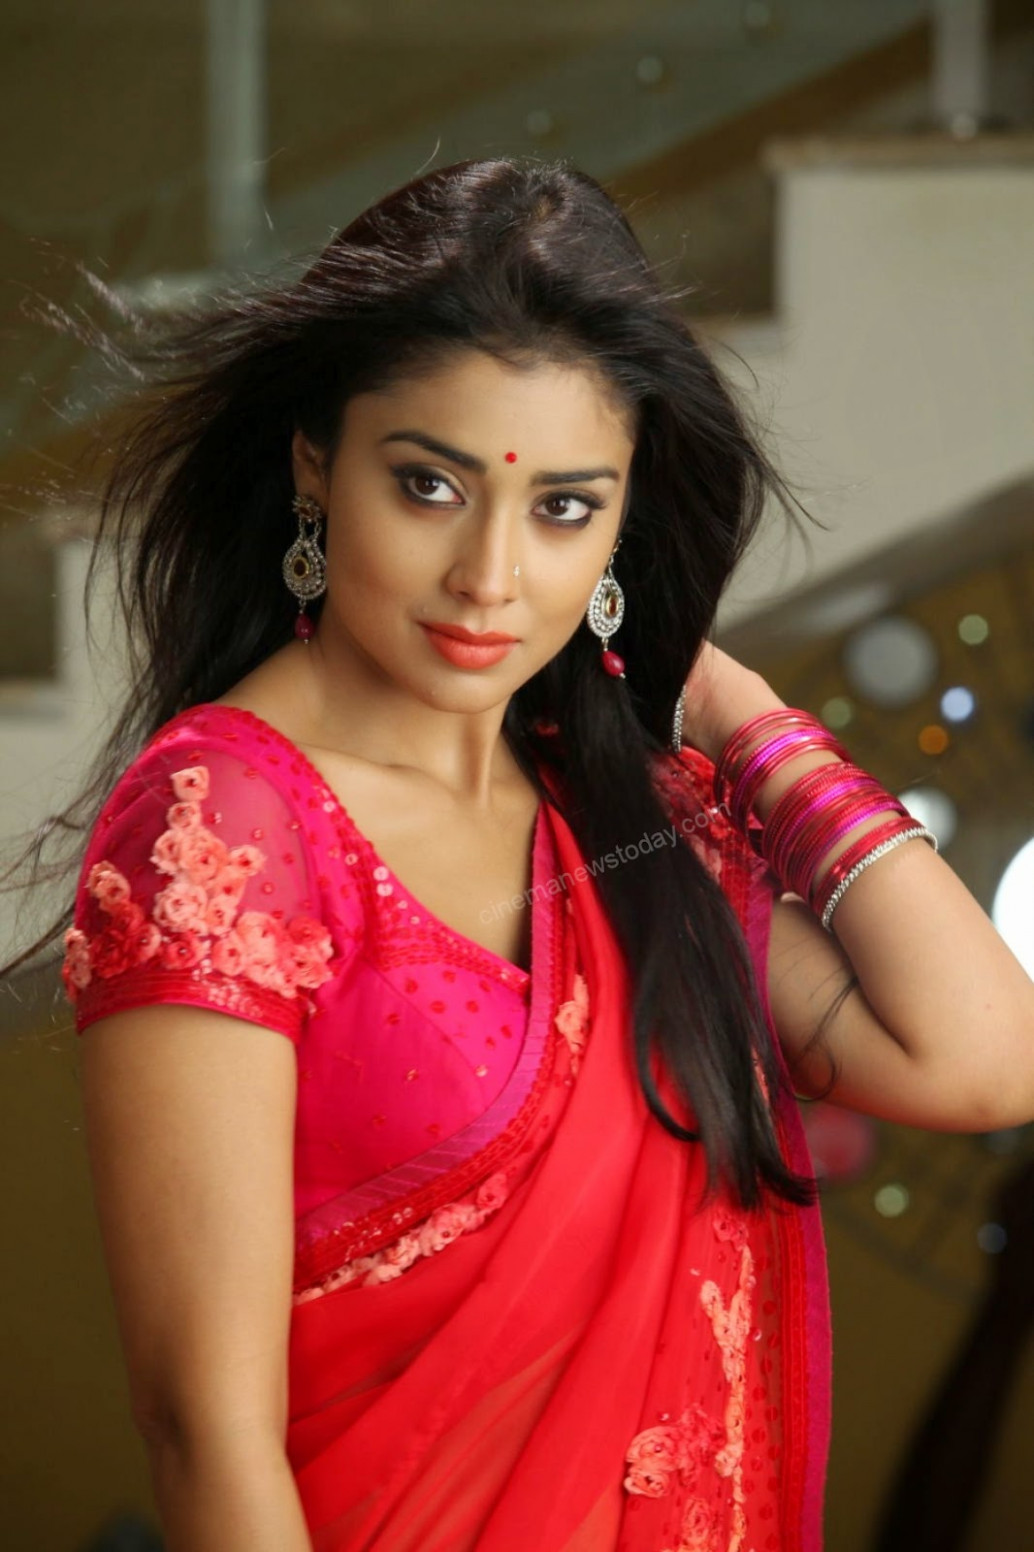 Top 10 South Indian Actresses by Salary Per Movie in 2015 ...